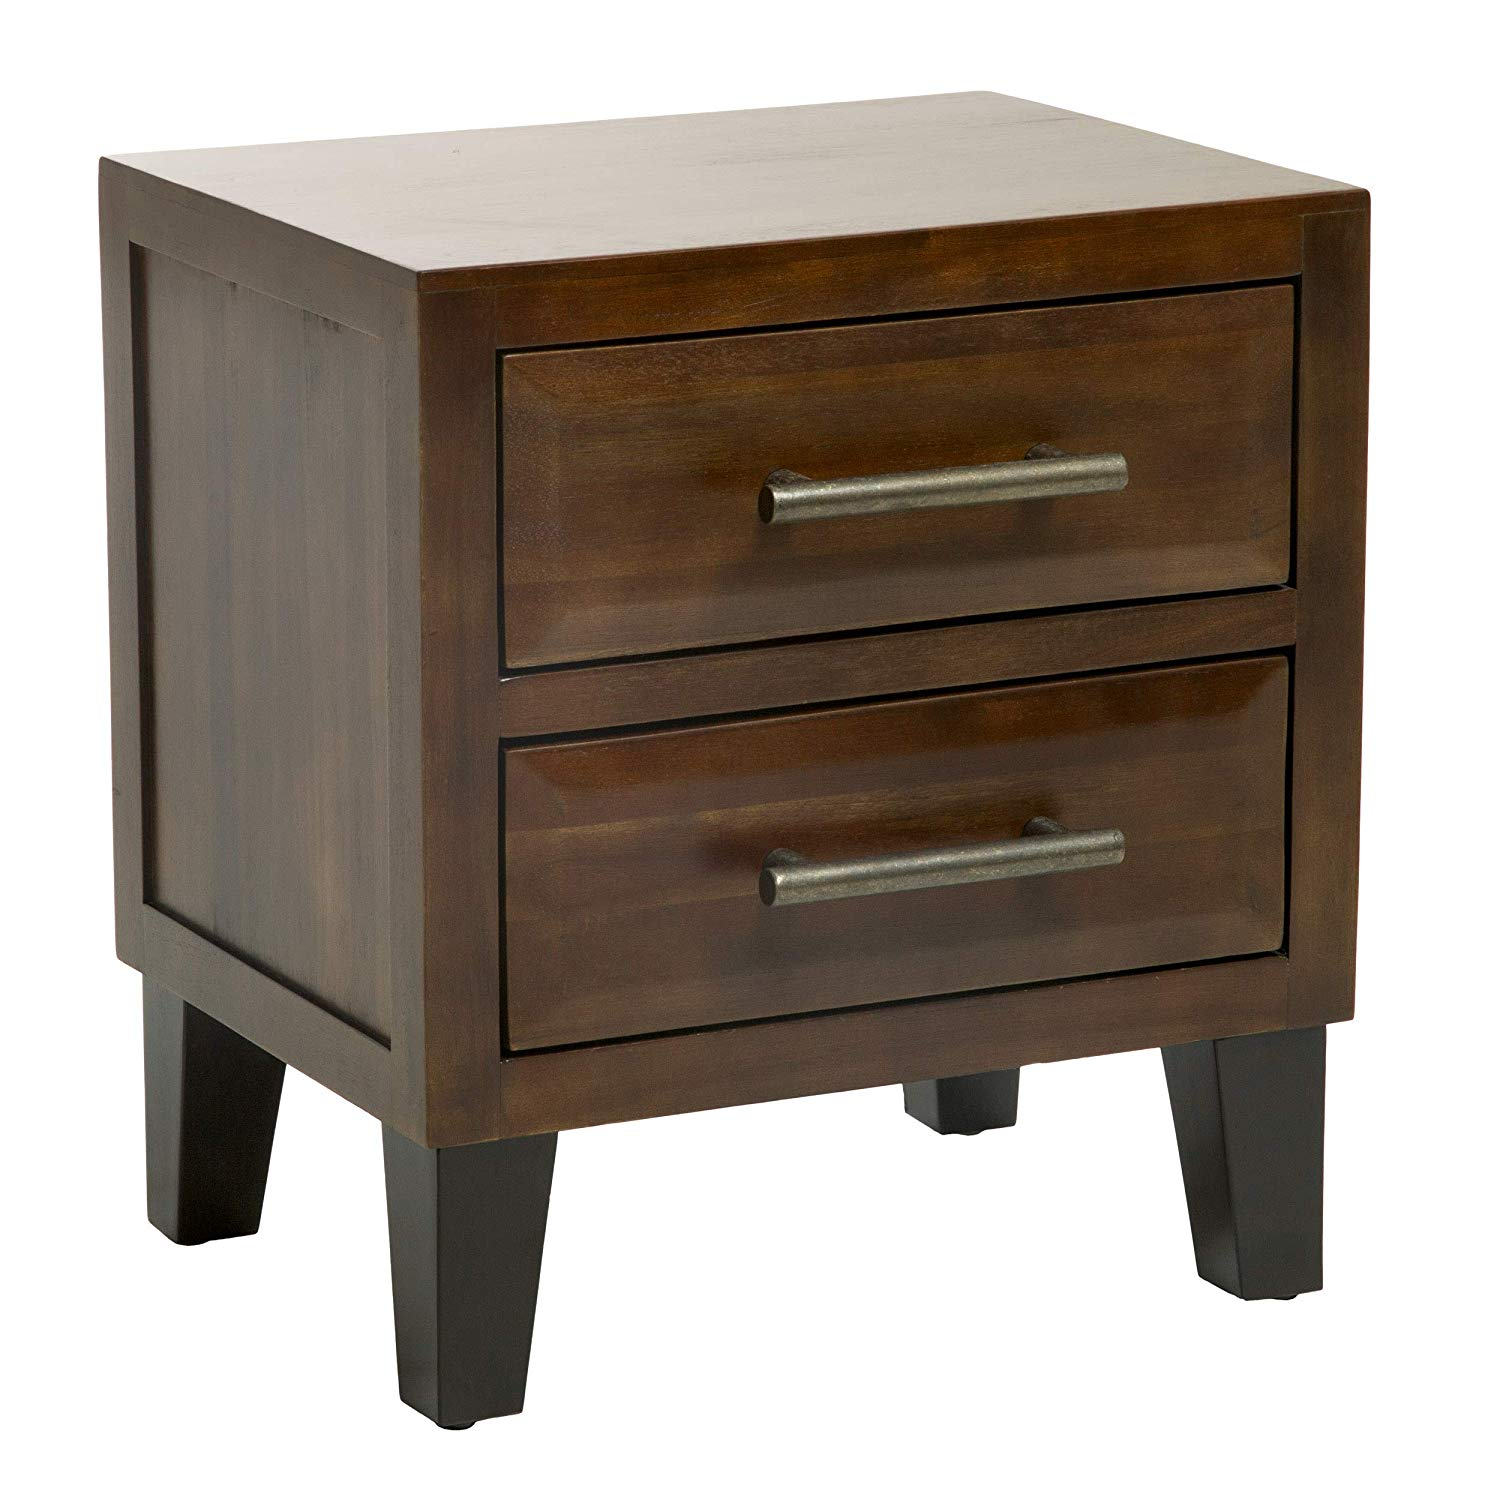 modern winning clarissa organizer quinn darley heavenly autumn table knobs assembly changing combo ellie liners pulls glamorous drawer target dresser accent full size telescope